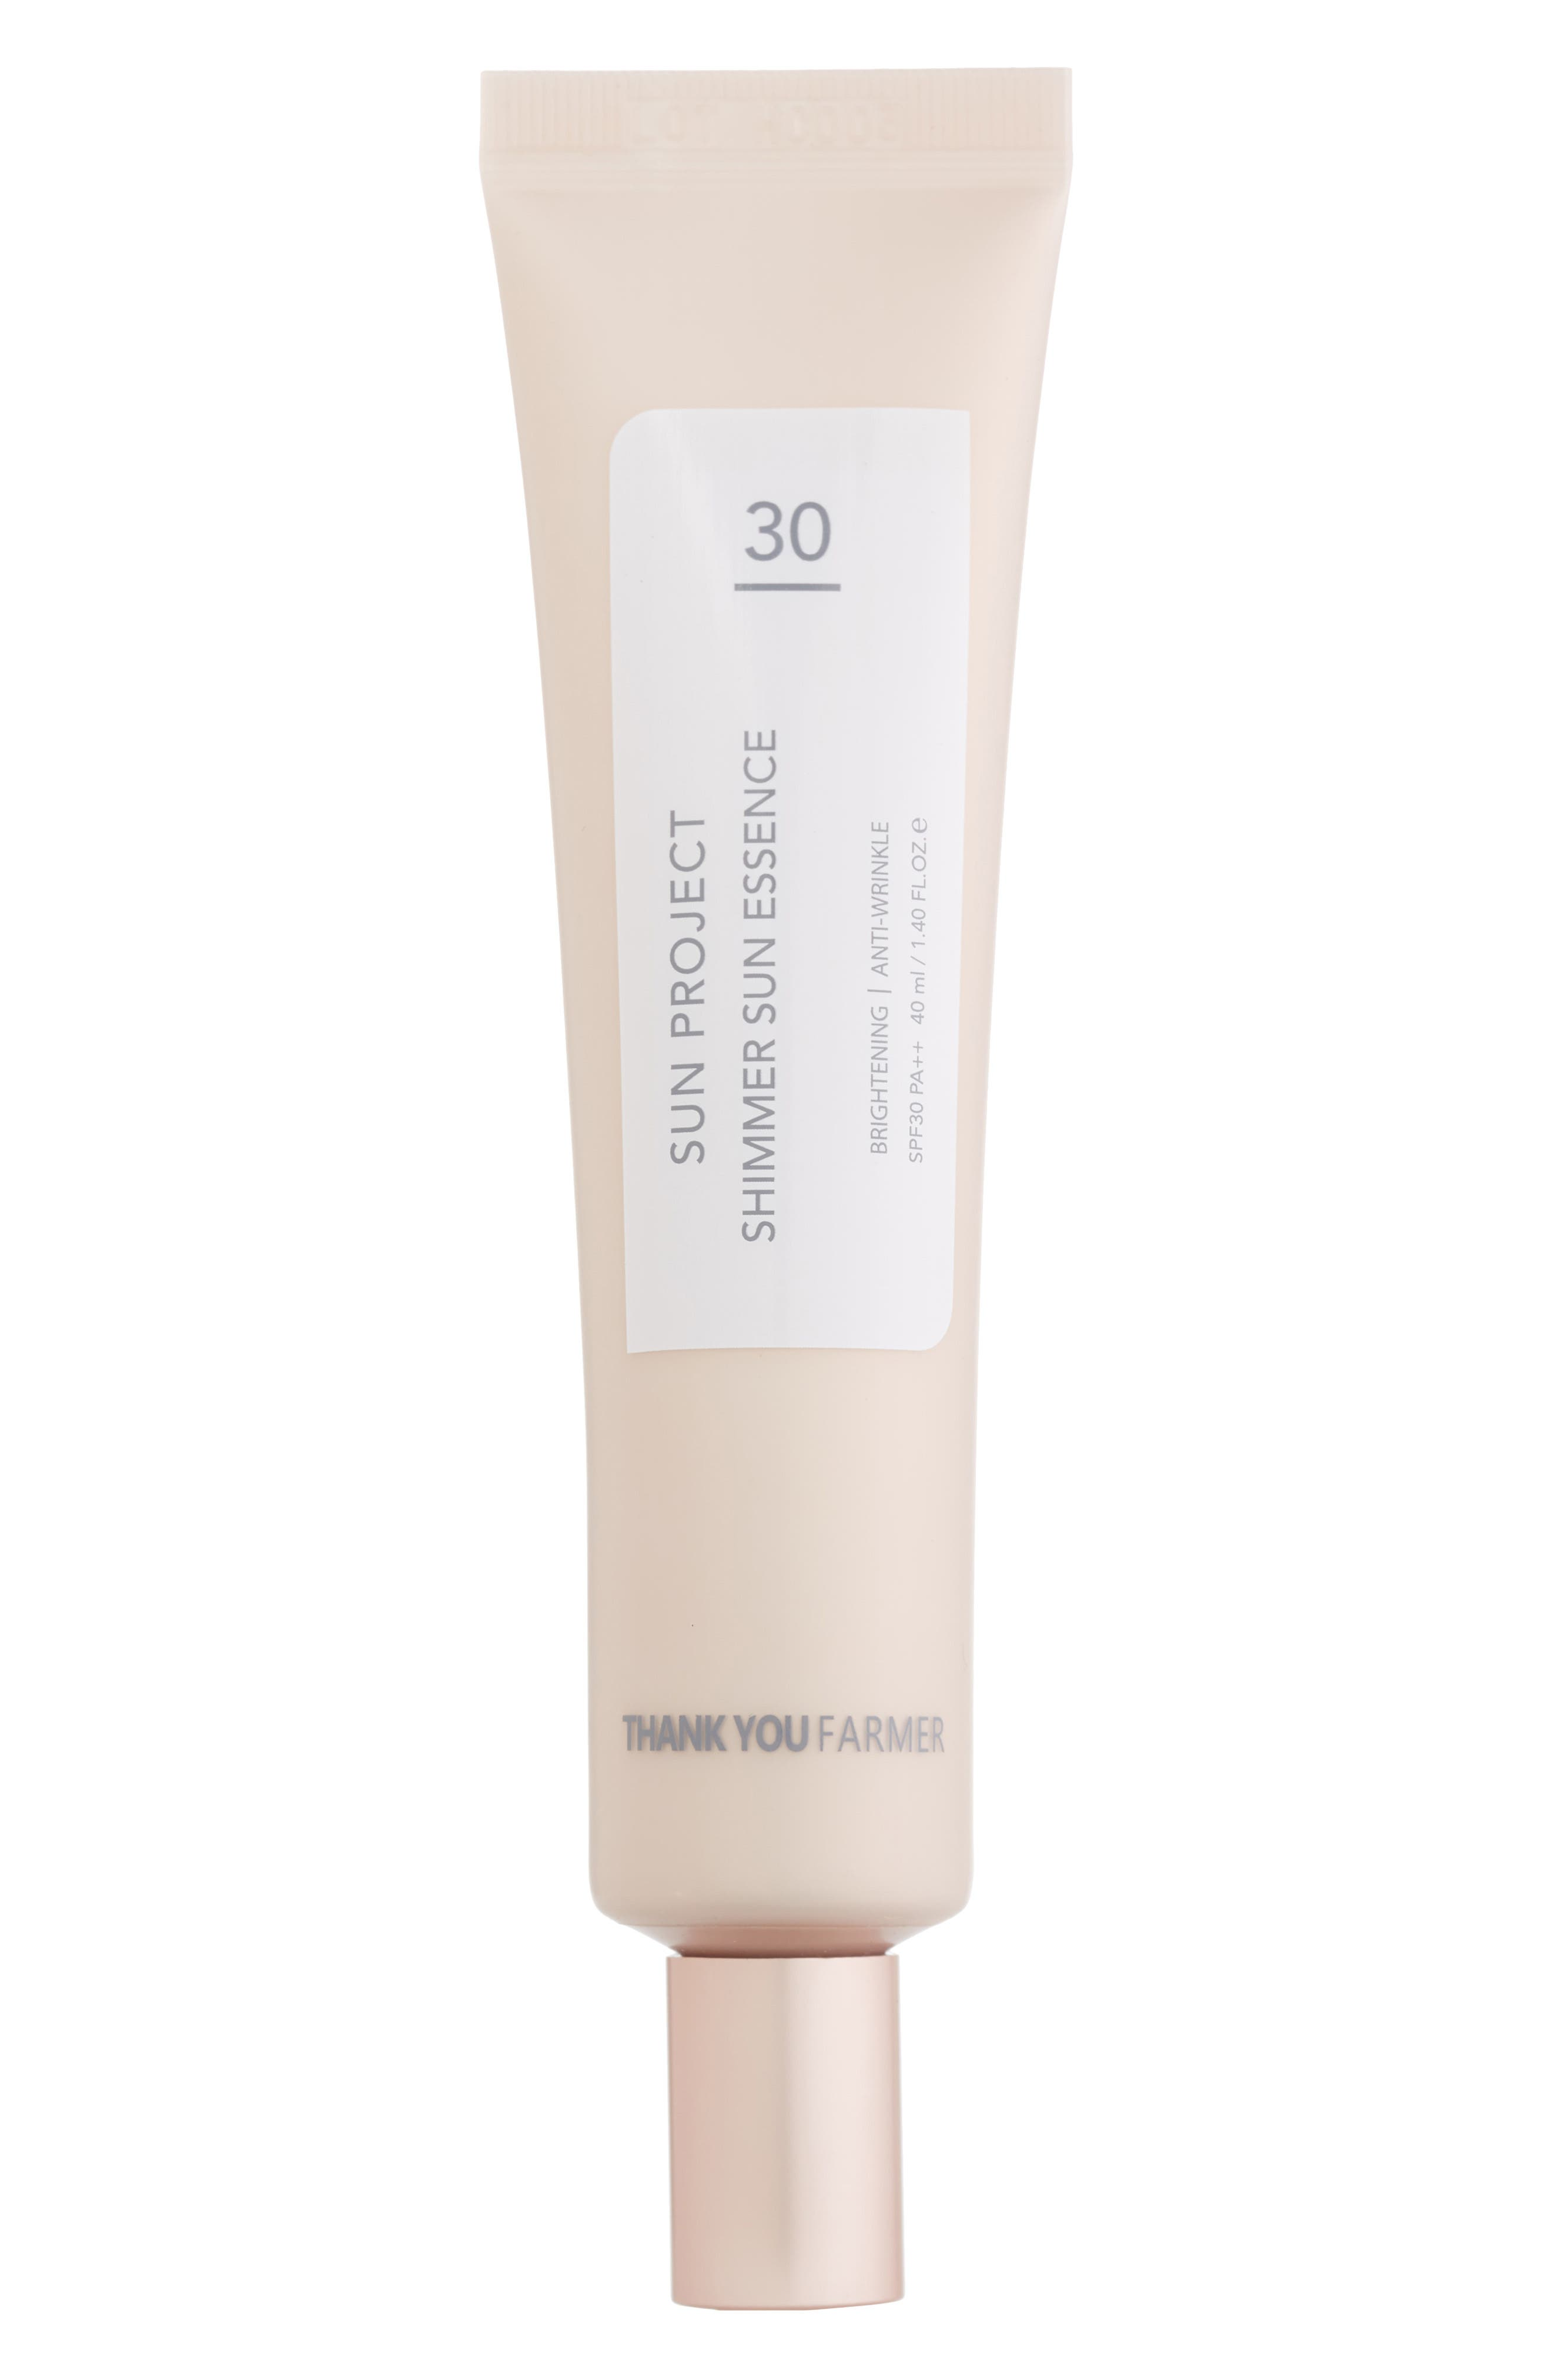 THANK YOU FARMER Sun Project Shimmer Sun Essence Spf 30 Pa++ in Pink